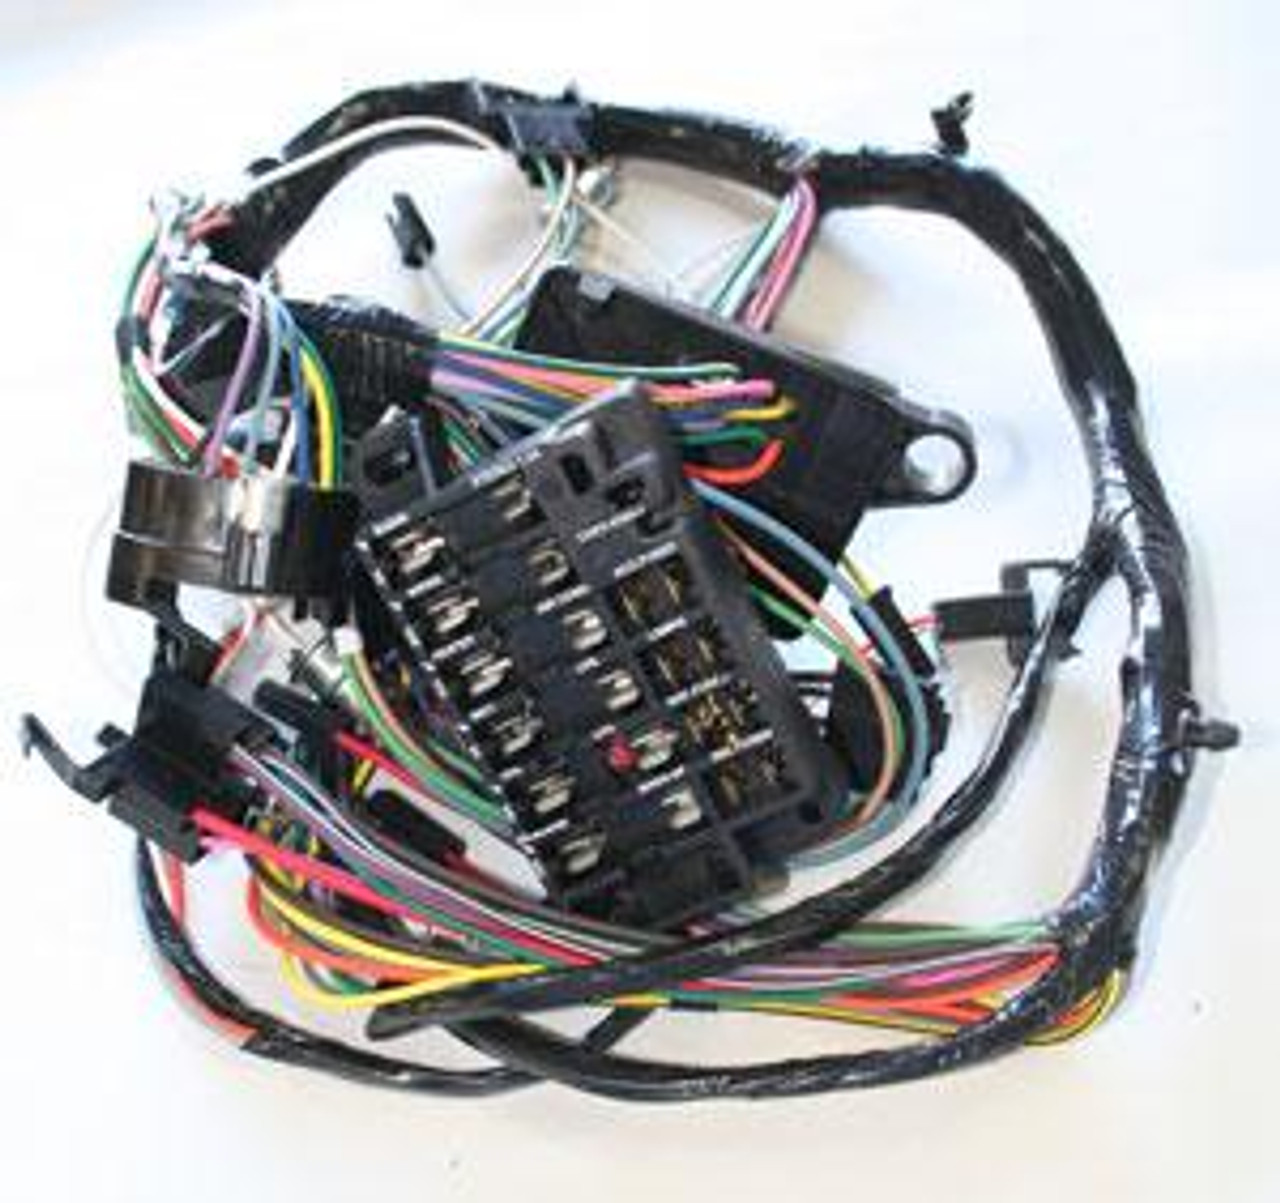 1967 Chevelle, El Camino Dash Harness, Console shift, with Gauges (CH70401)